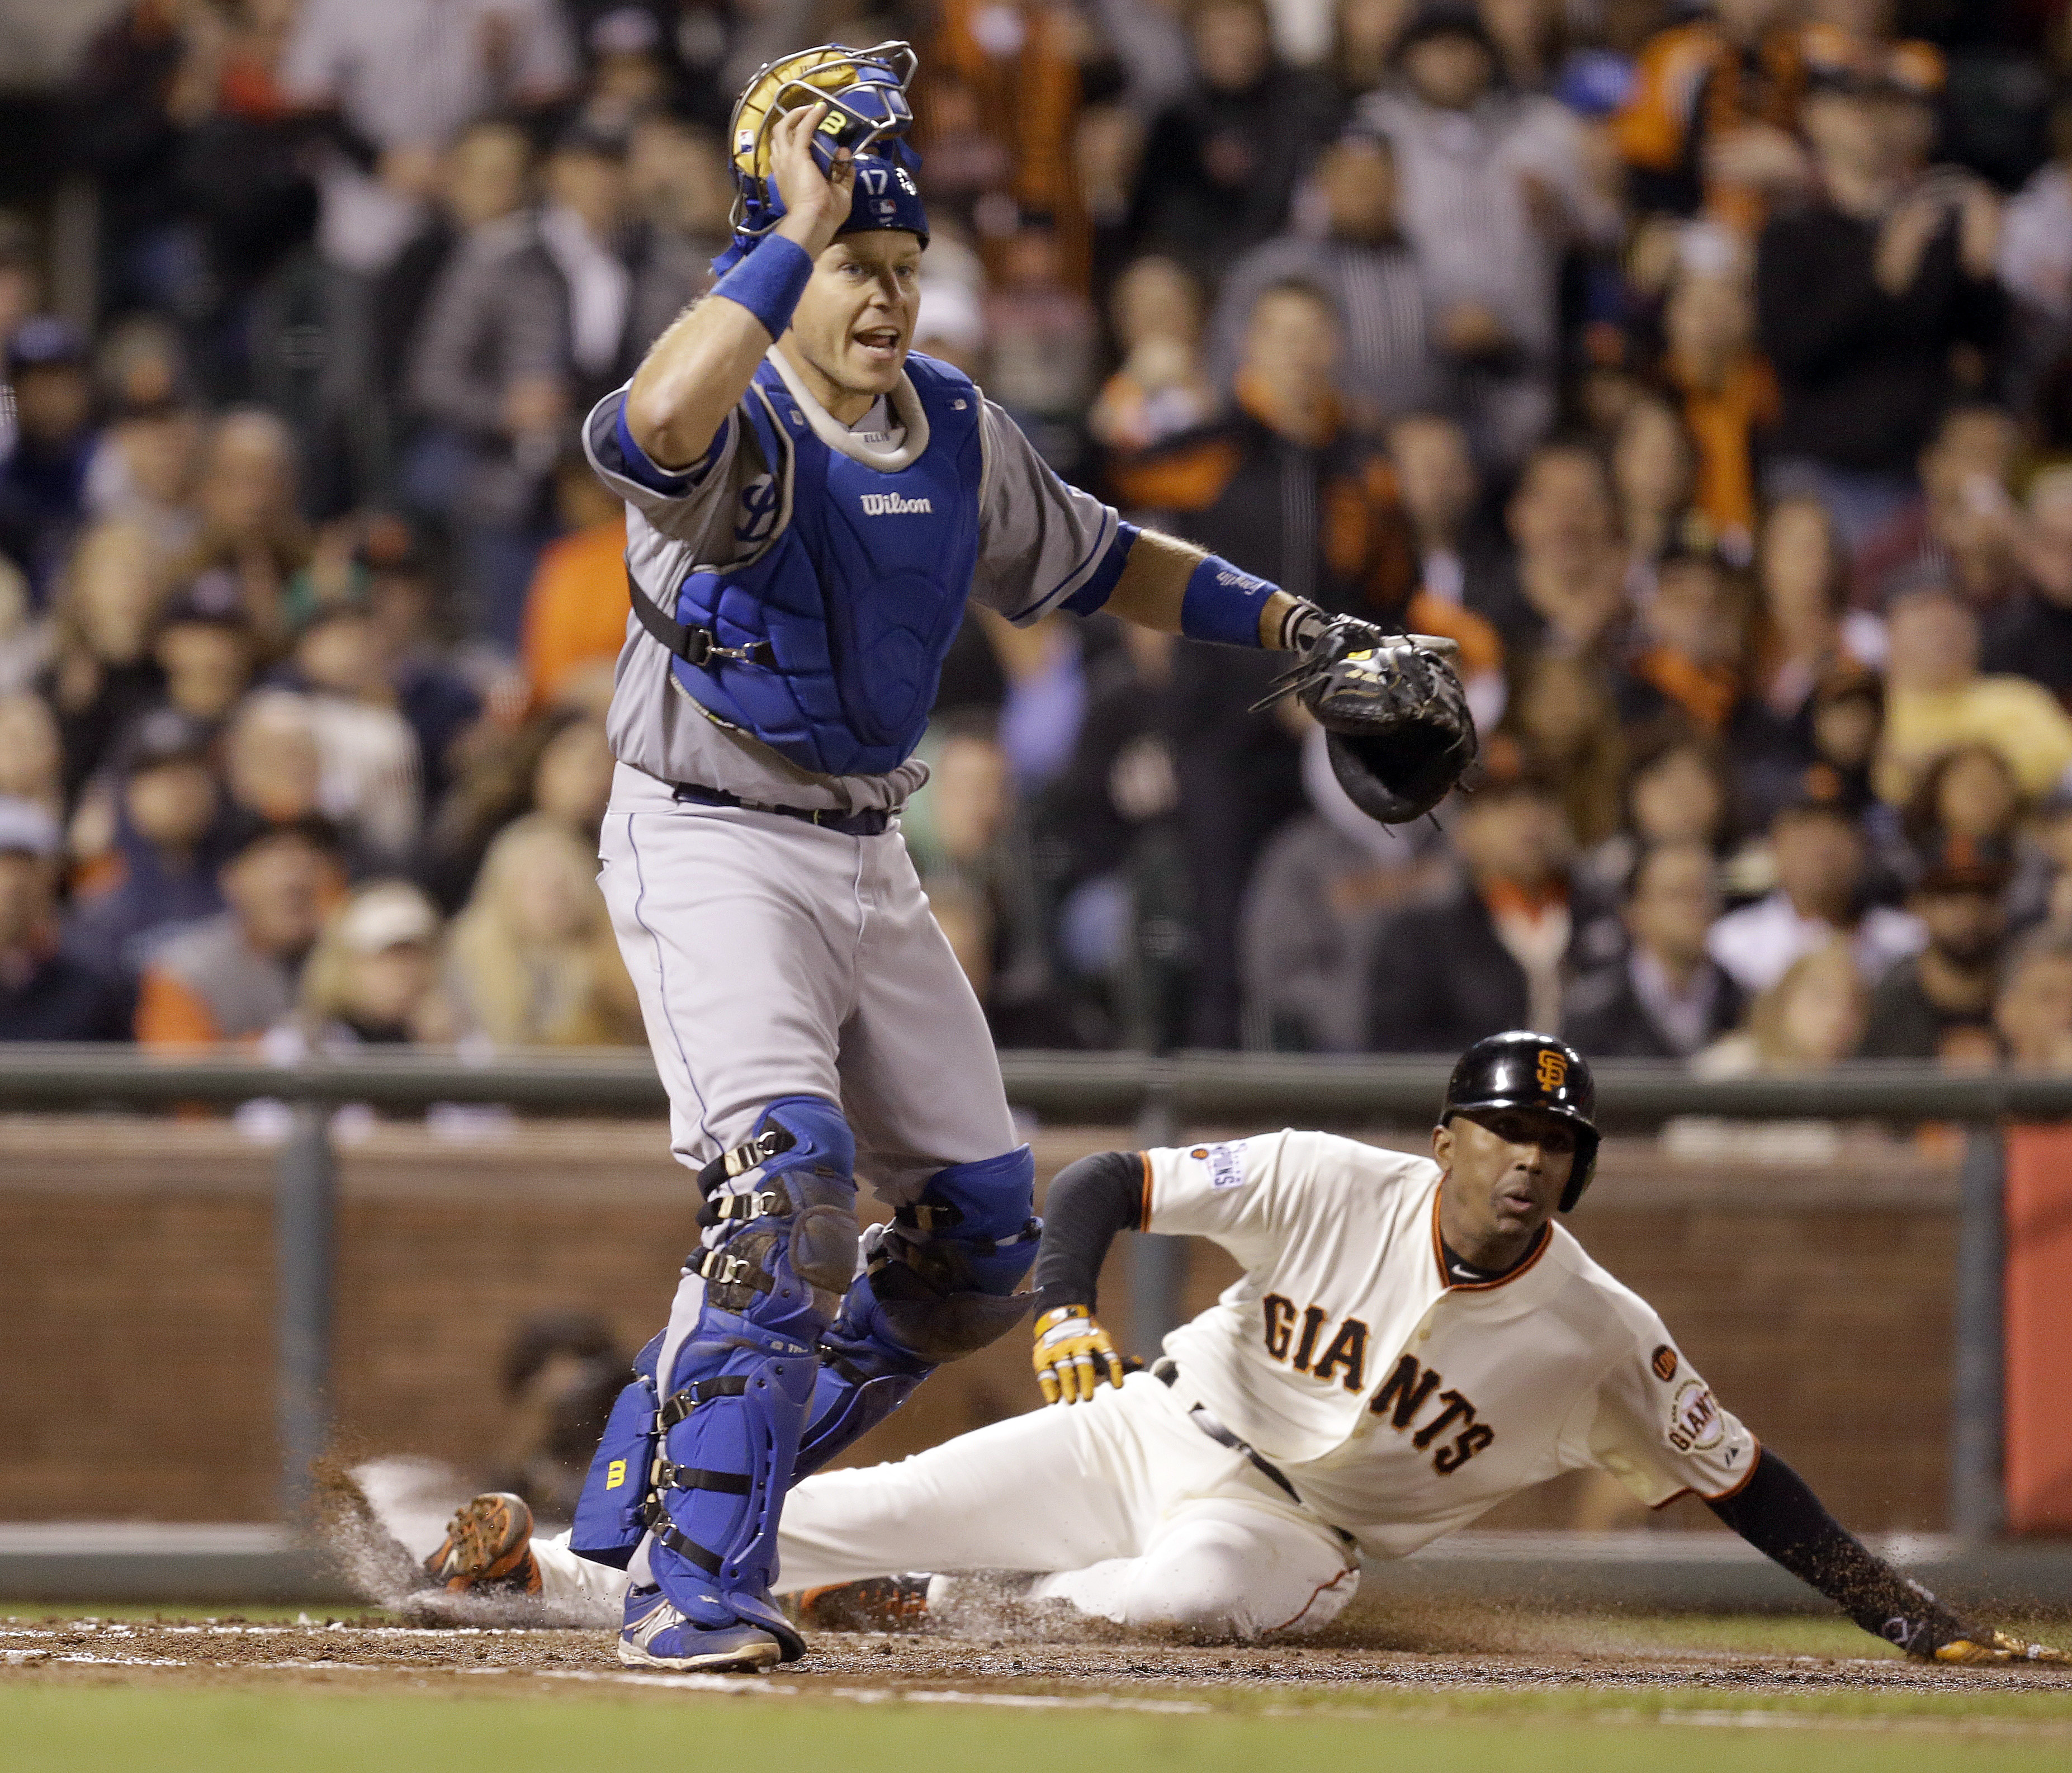 San Francisco Giants' Joaquin Arias, right, slides to score behind Los Angeles Dodgers catcher A.J. Ellis during the third inning of a baseball game Wednesday, April 22, 2015, in San Francisco. Arias scored on a ground out by Nori Aoki. (AP Photo/Ben Marg